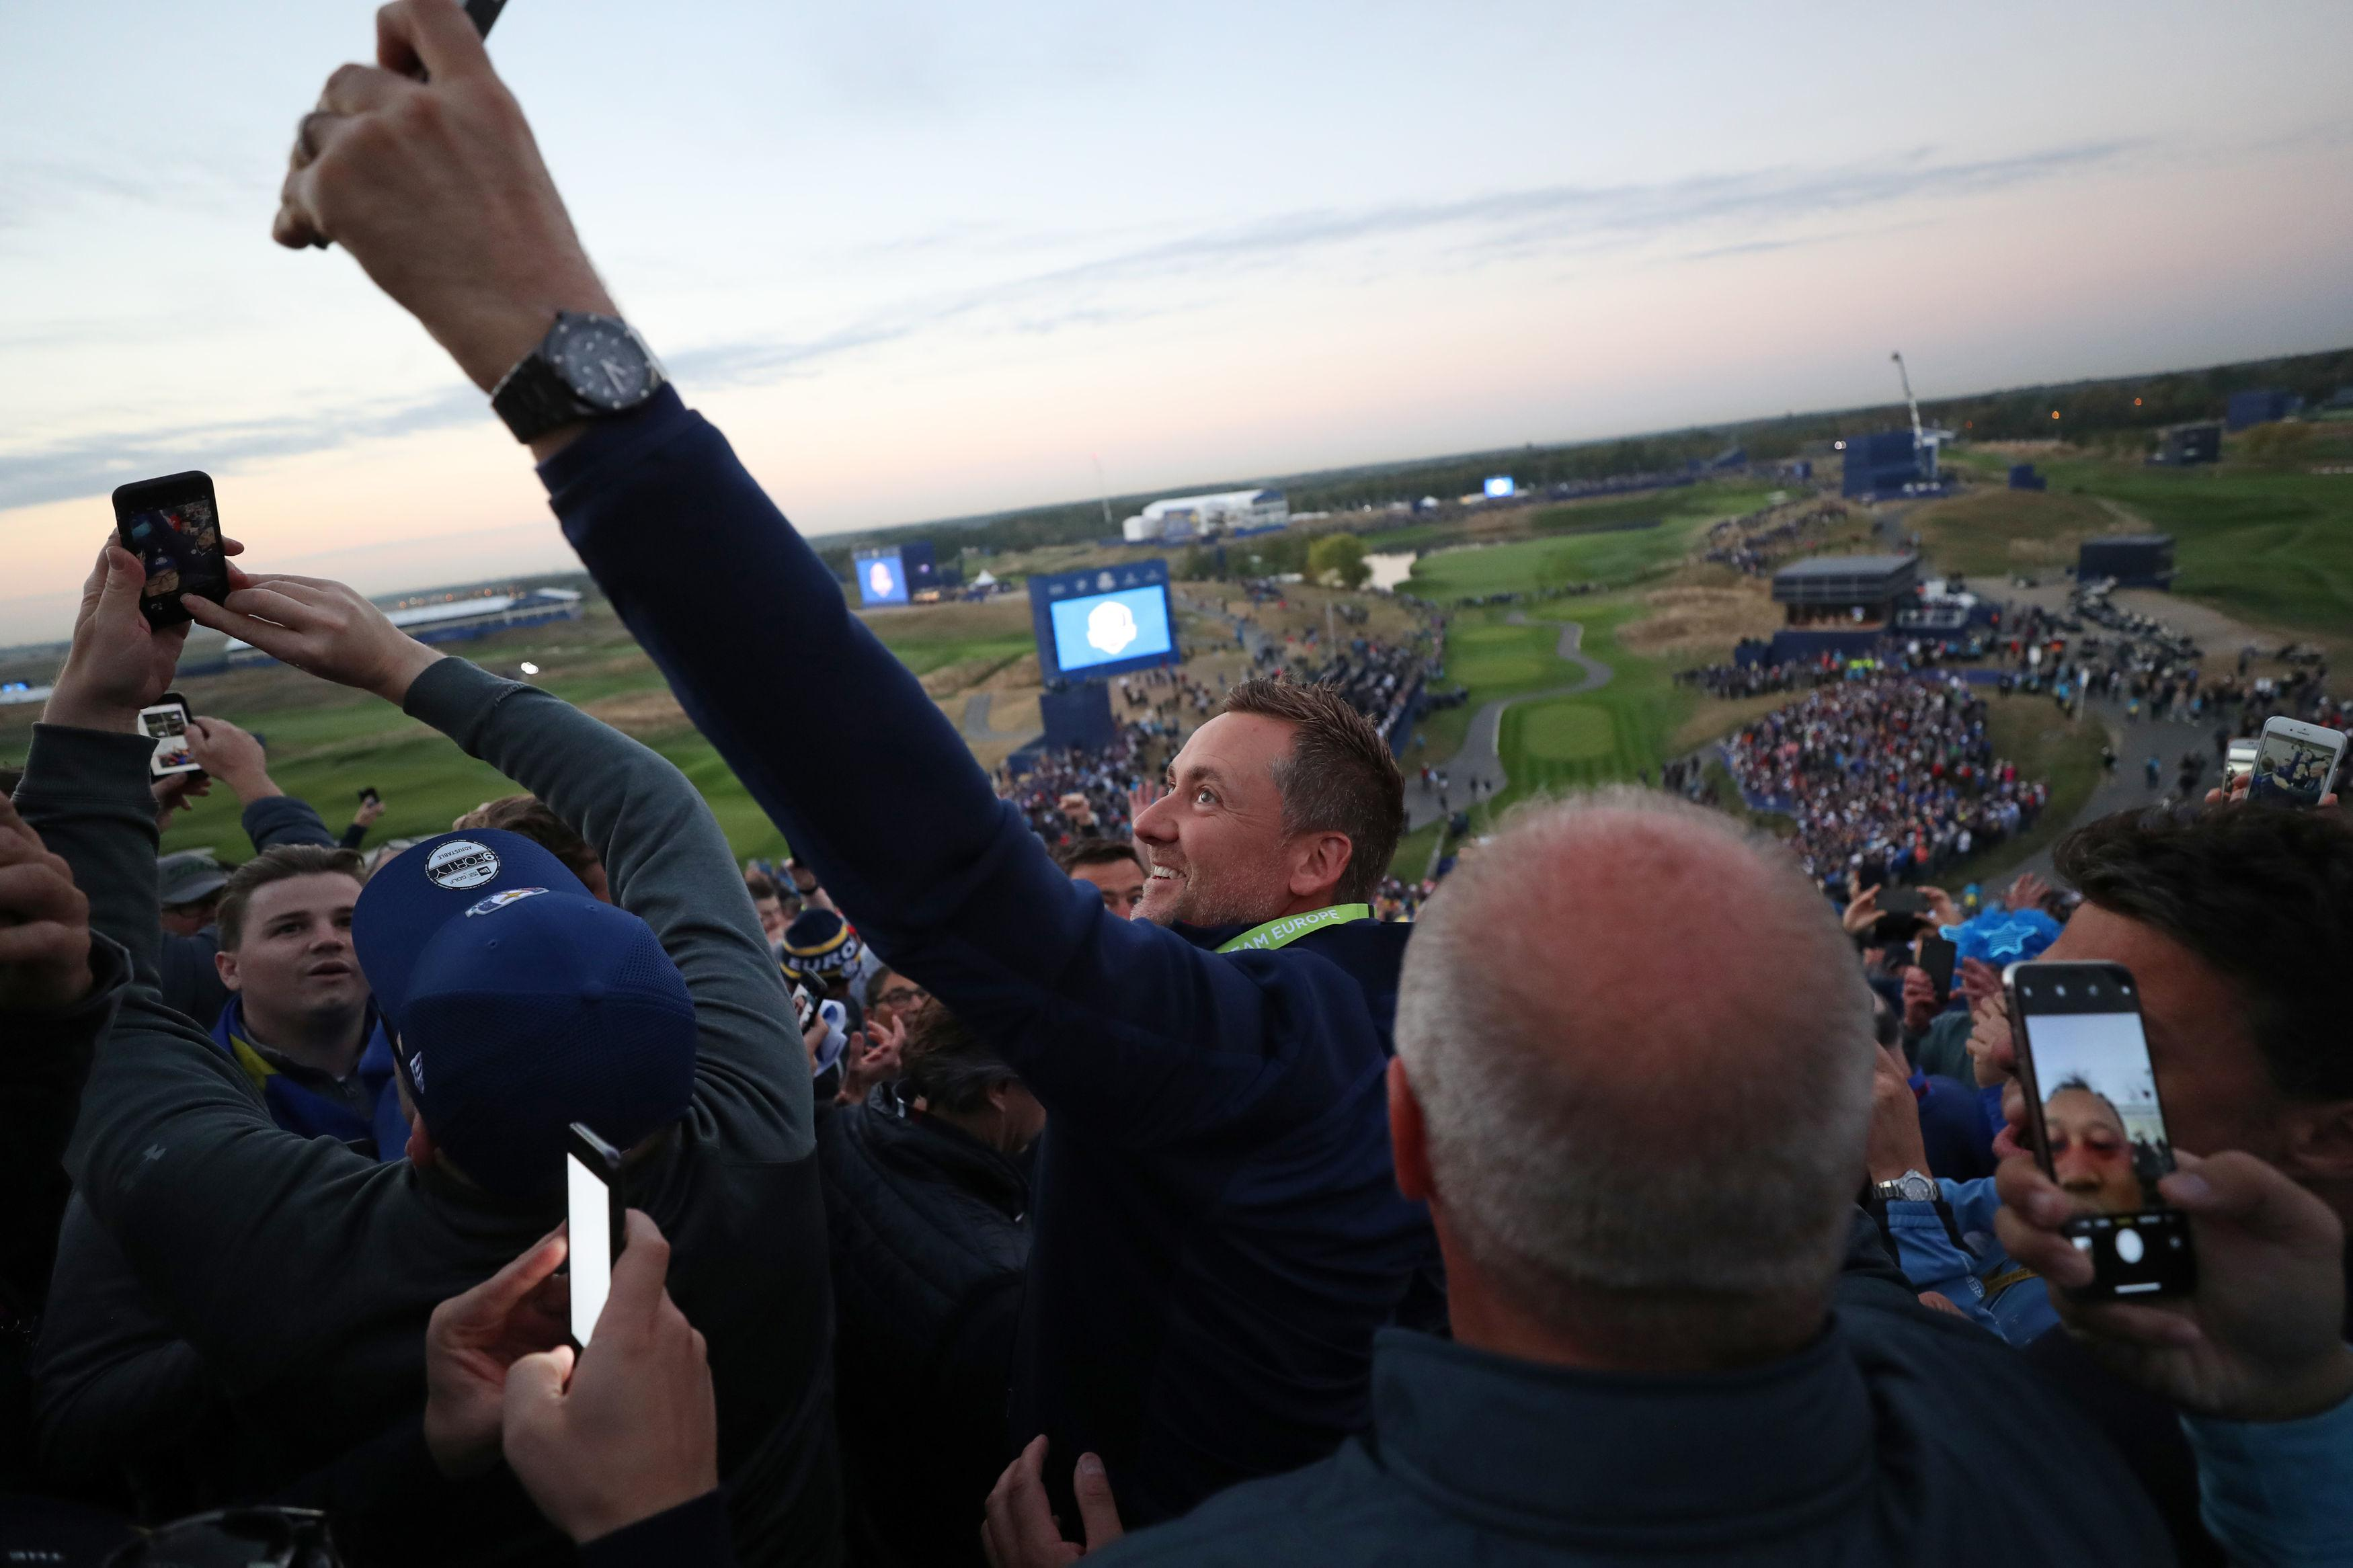 The Ryder Cup legend was at the top of the grandstand on the first tee